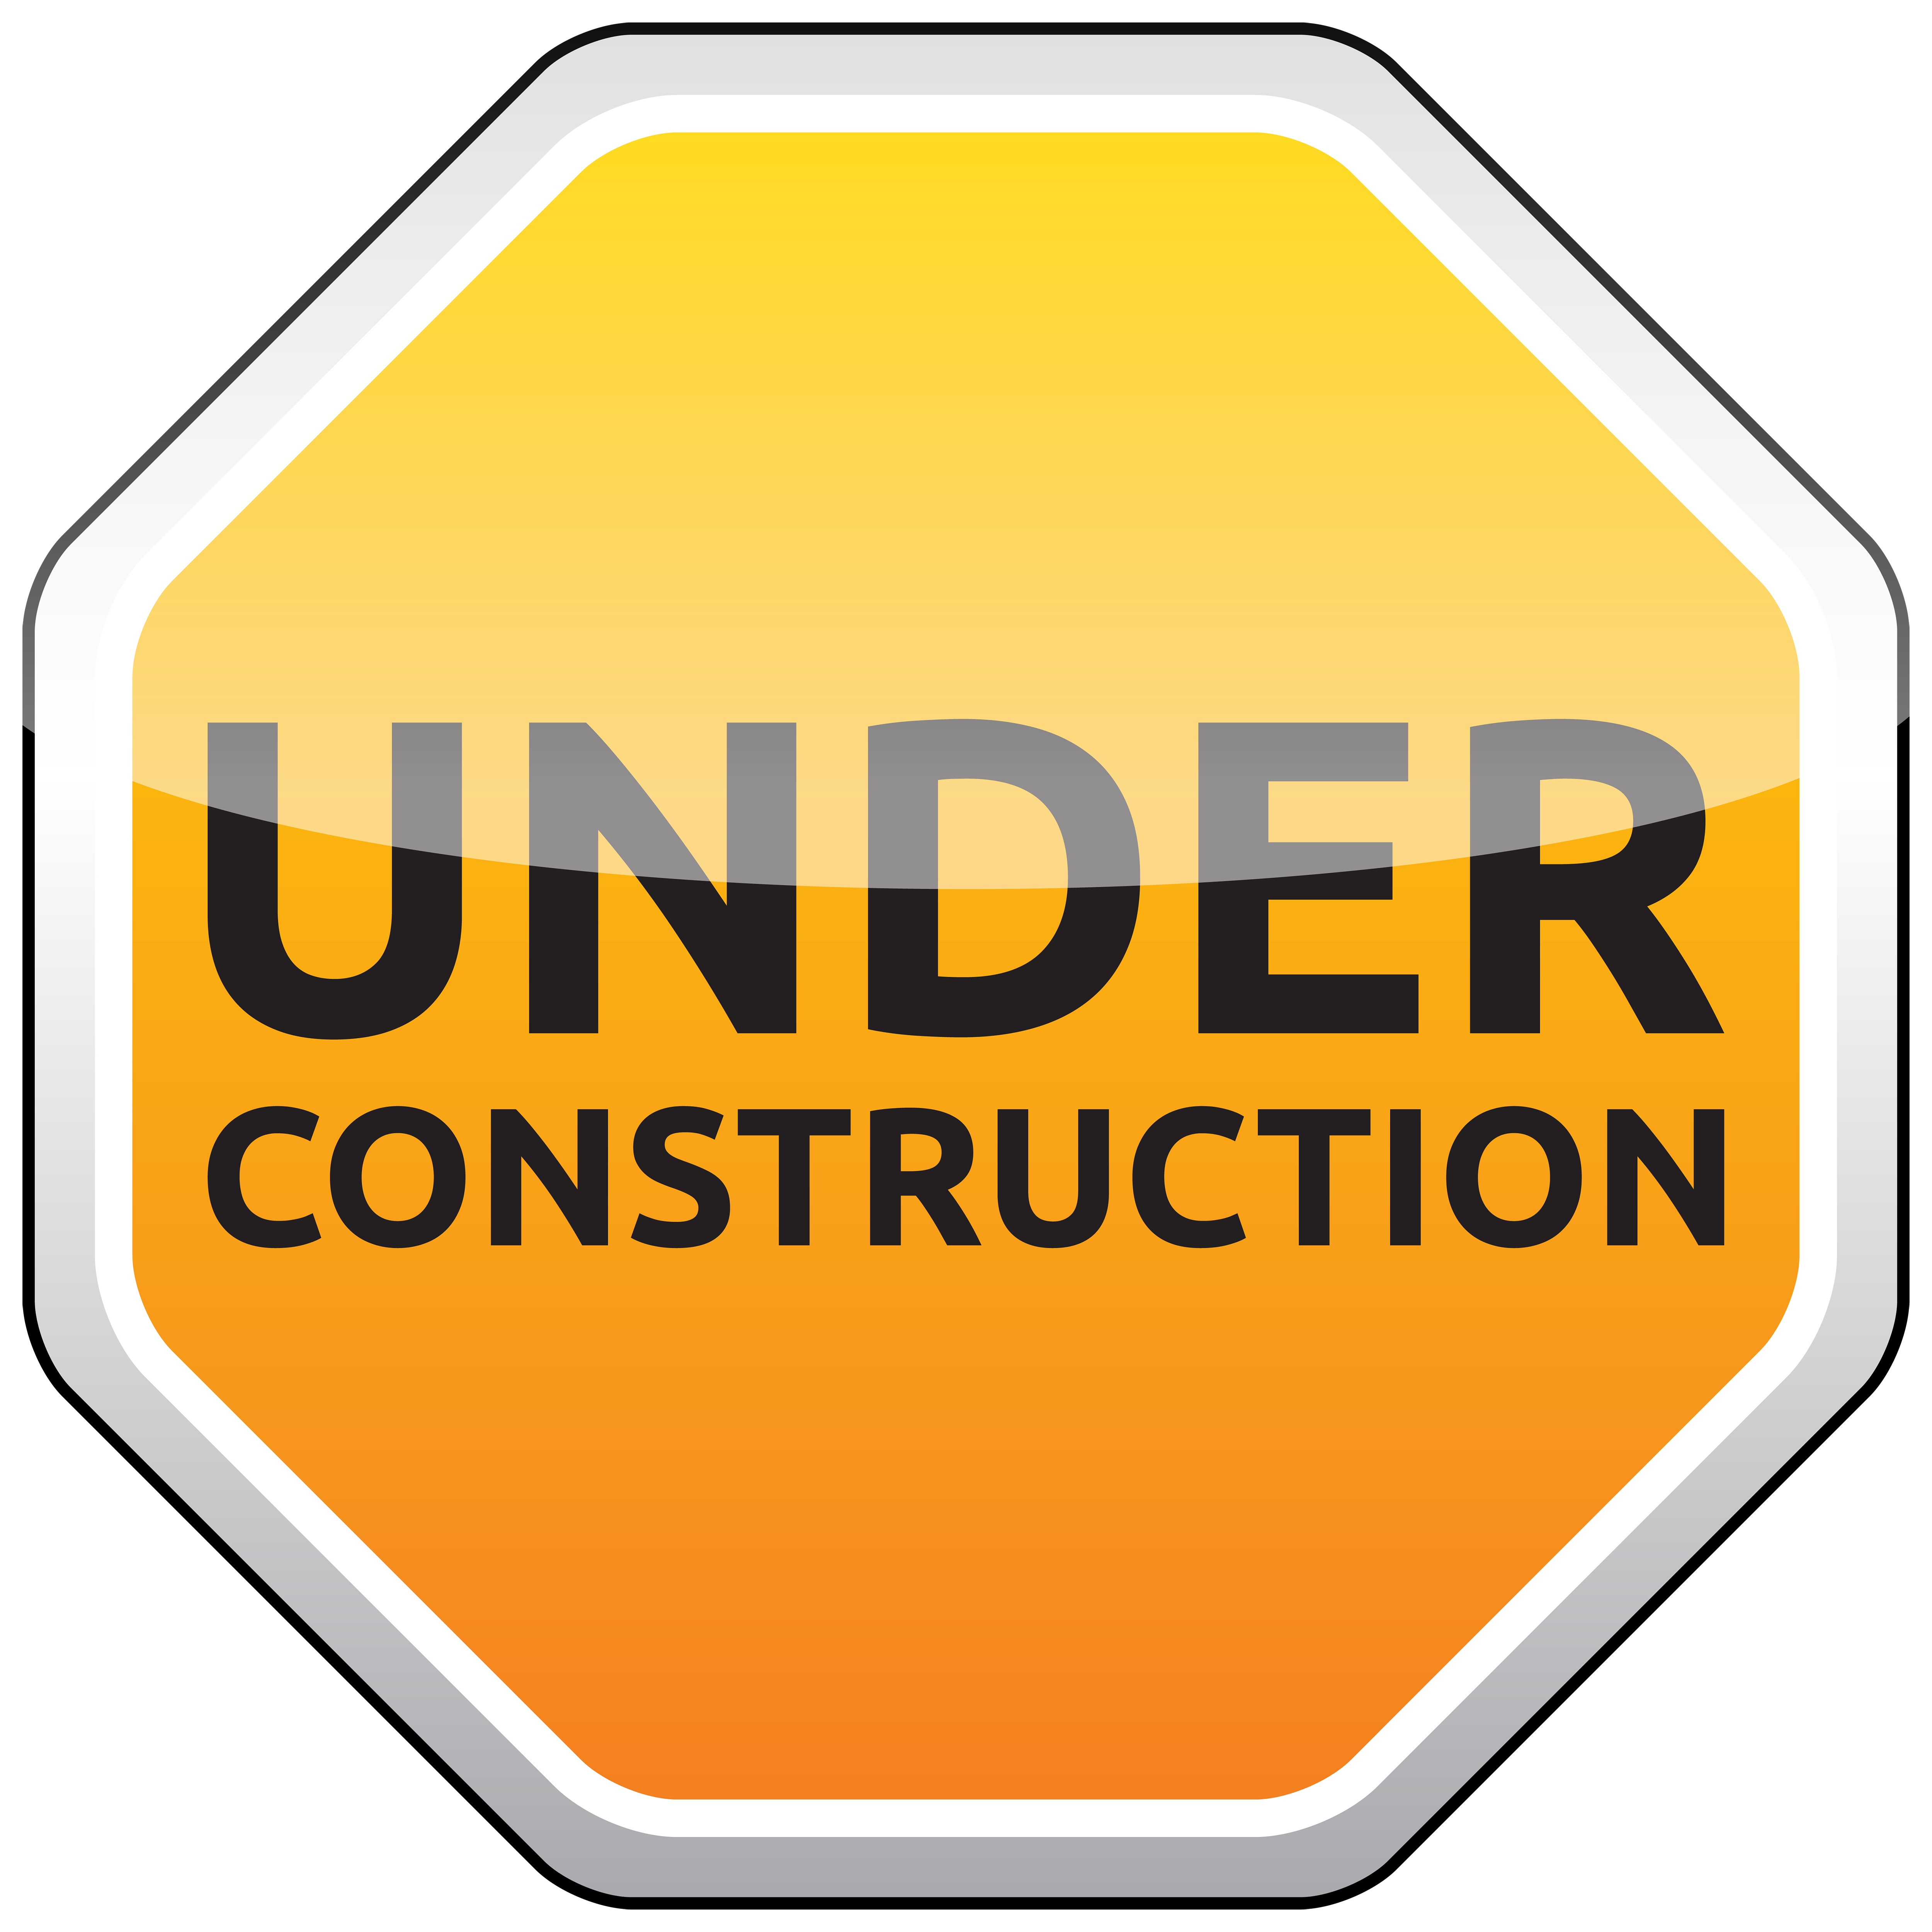 Under sign png best. Glass clipart construction